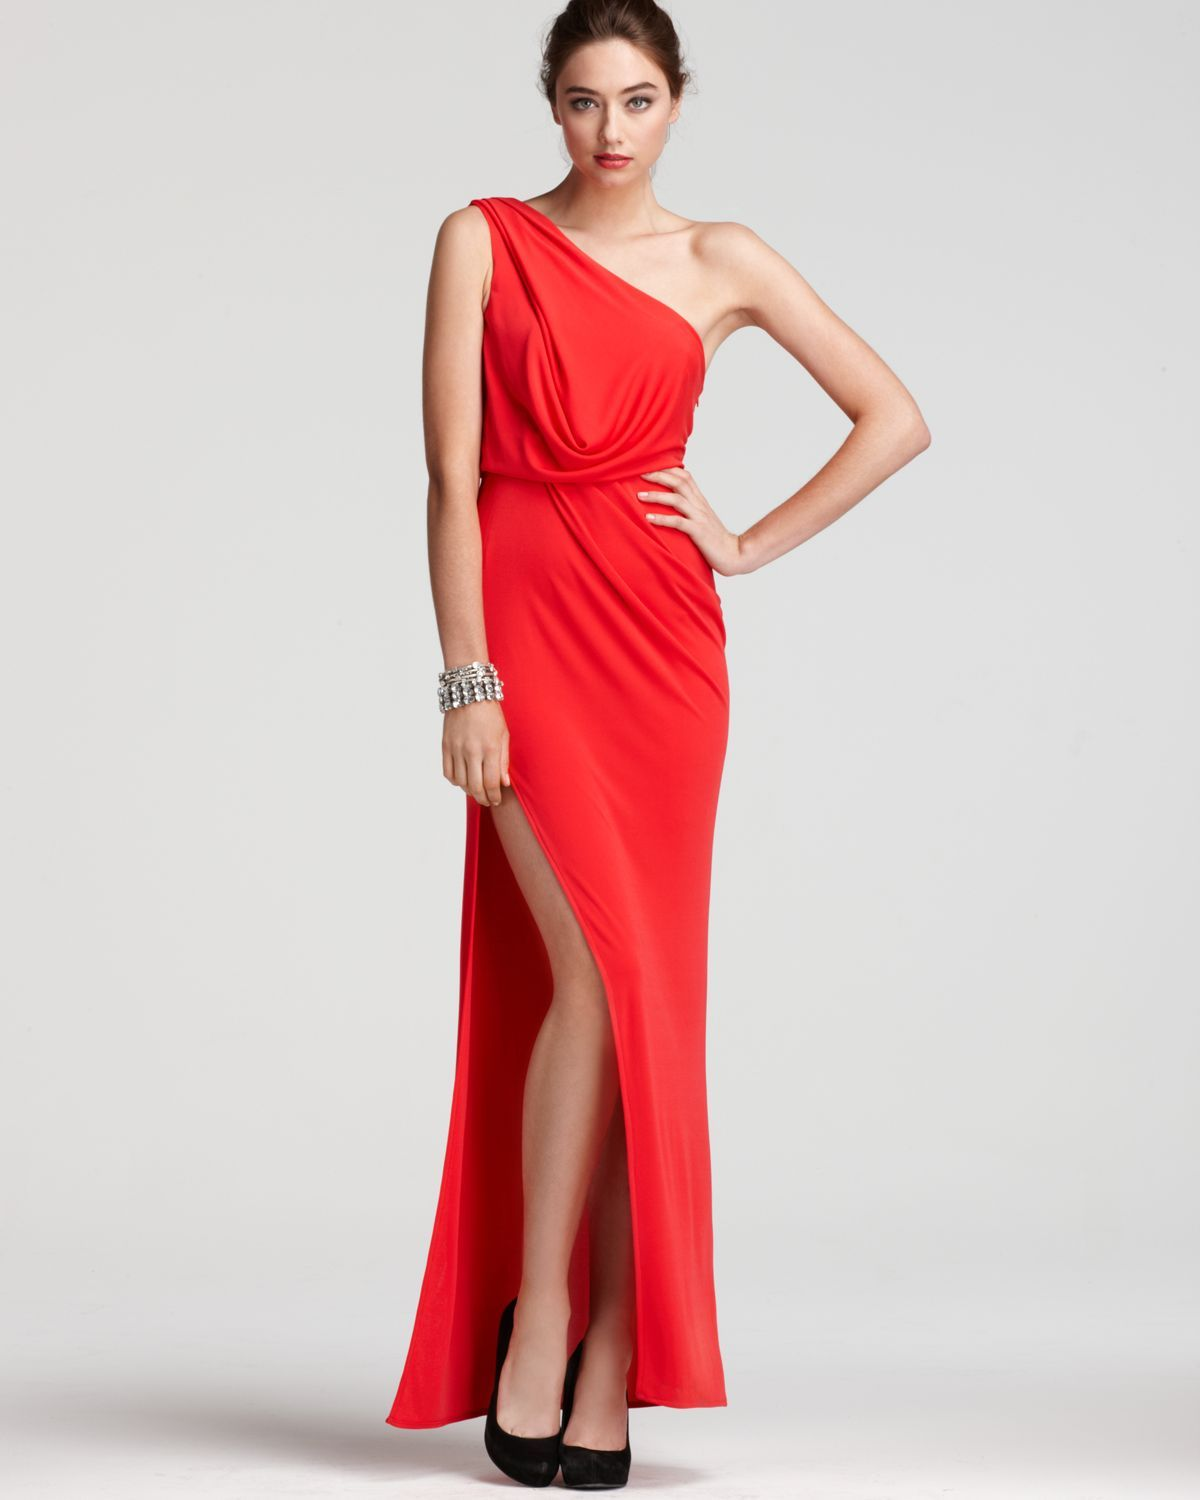 Bcbgmaxazria Gown One Shoulder Grecian Women Dresses Bloomingdale S Red Evening Gowns Evening Dresses Long Red Dress [ 1500 x 1200 Pixel ]